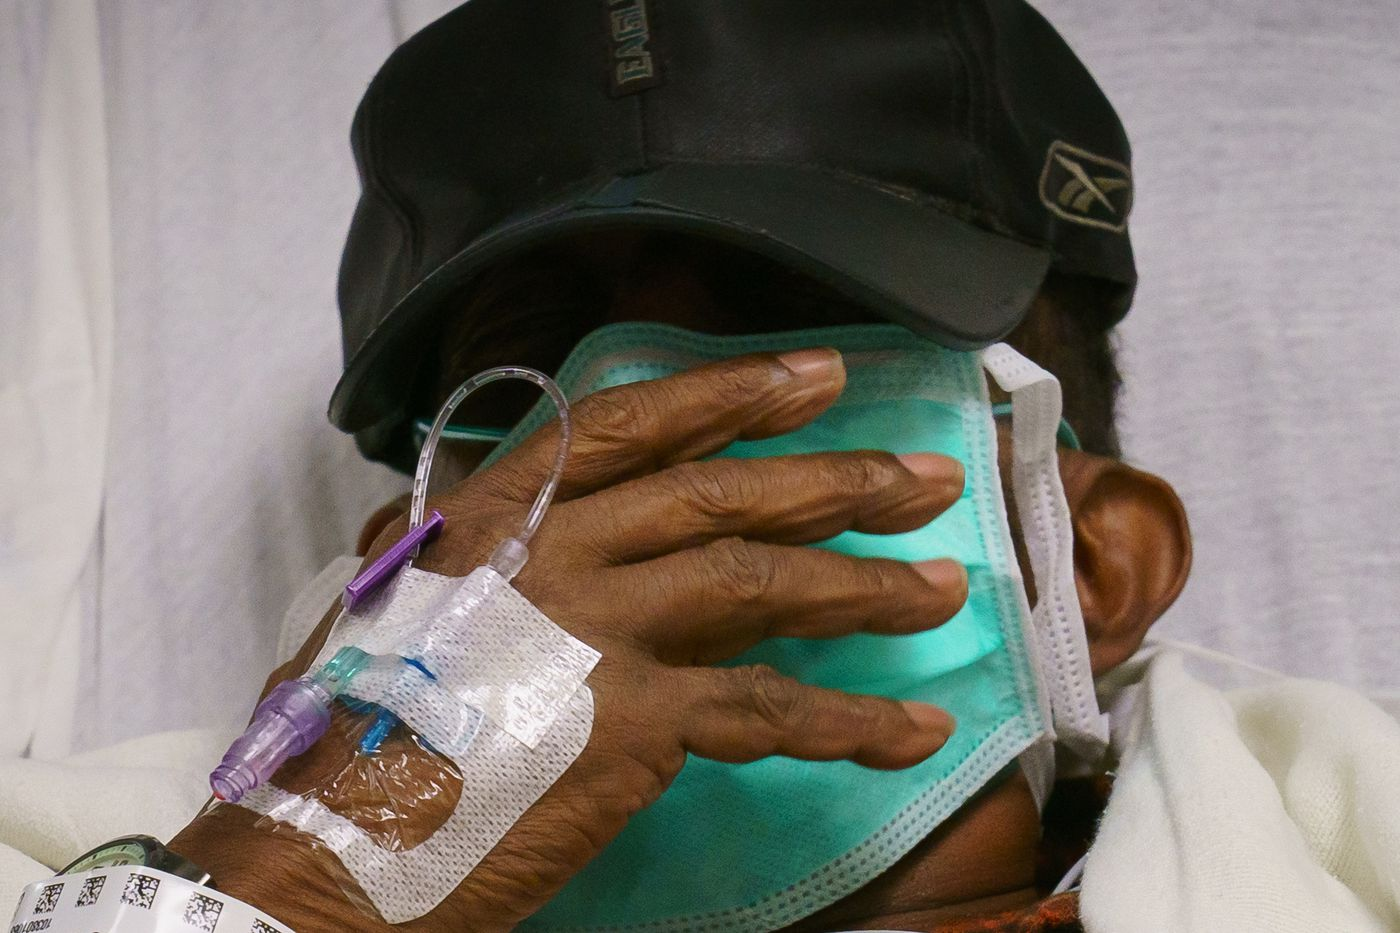 COVID-19 patient Herman Ebo, a 72-year-old retired U.S. Post Office clerk, puts his hand up to his face as he tries to control a bad cough while in the ER last month at Roxborough Memorial Hospital in Philadelphia.